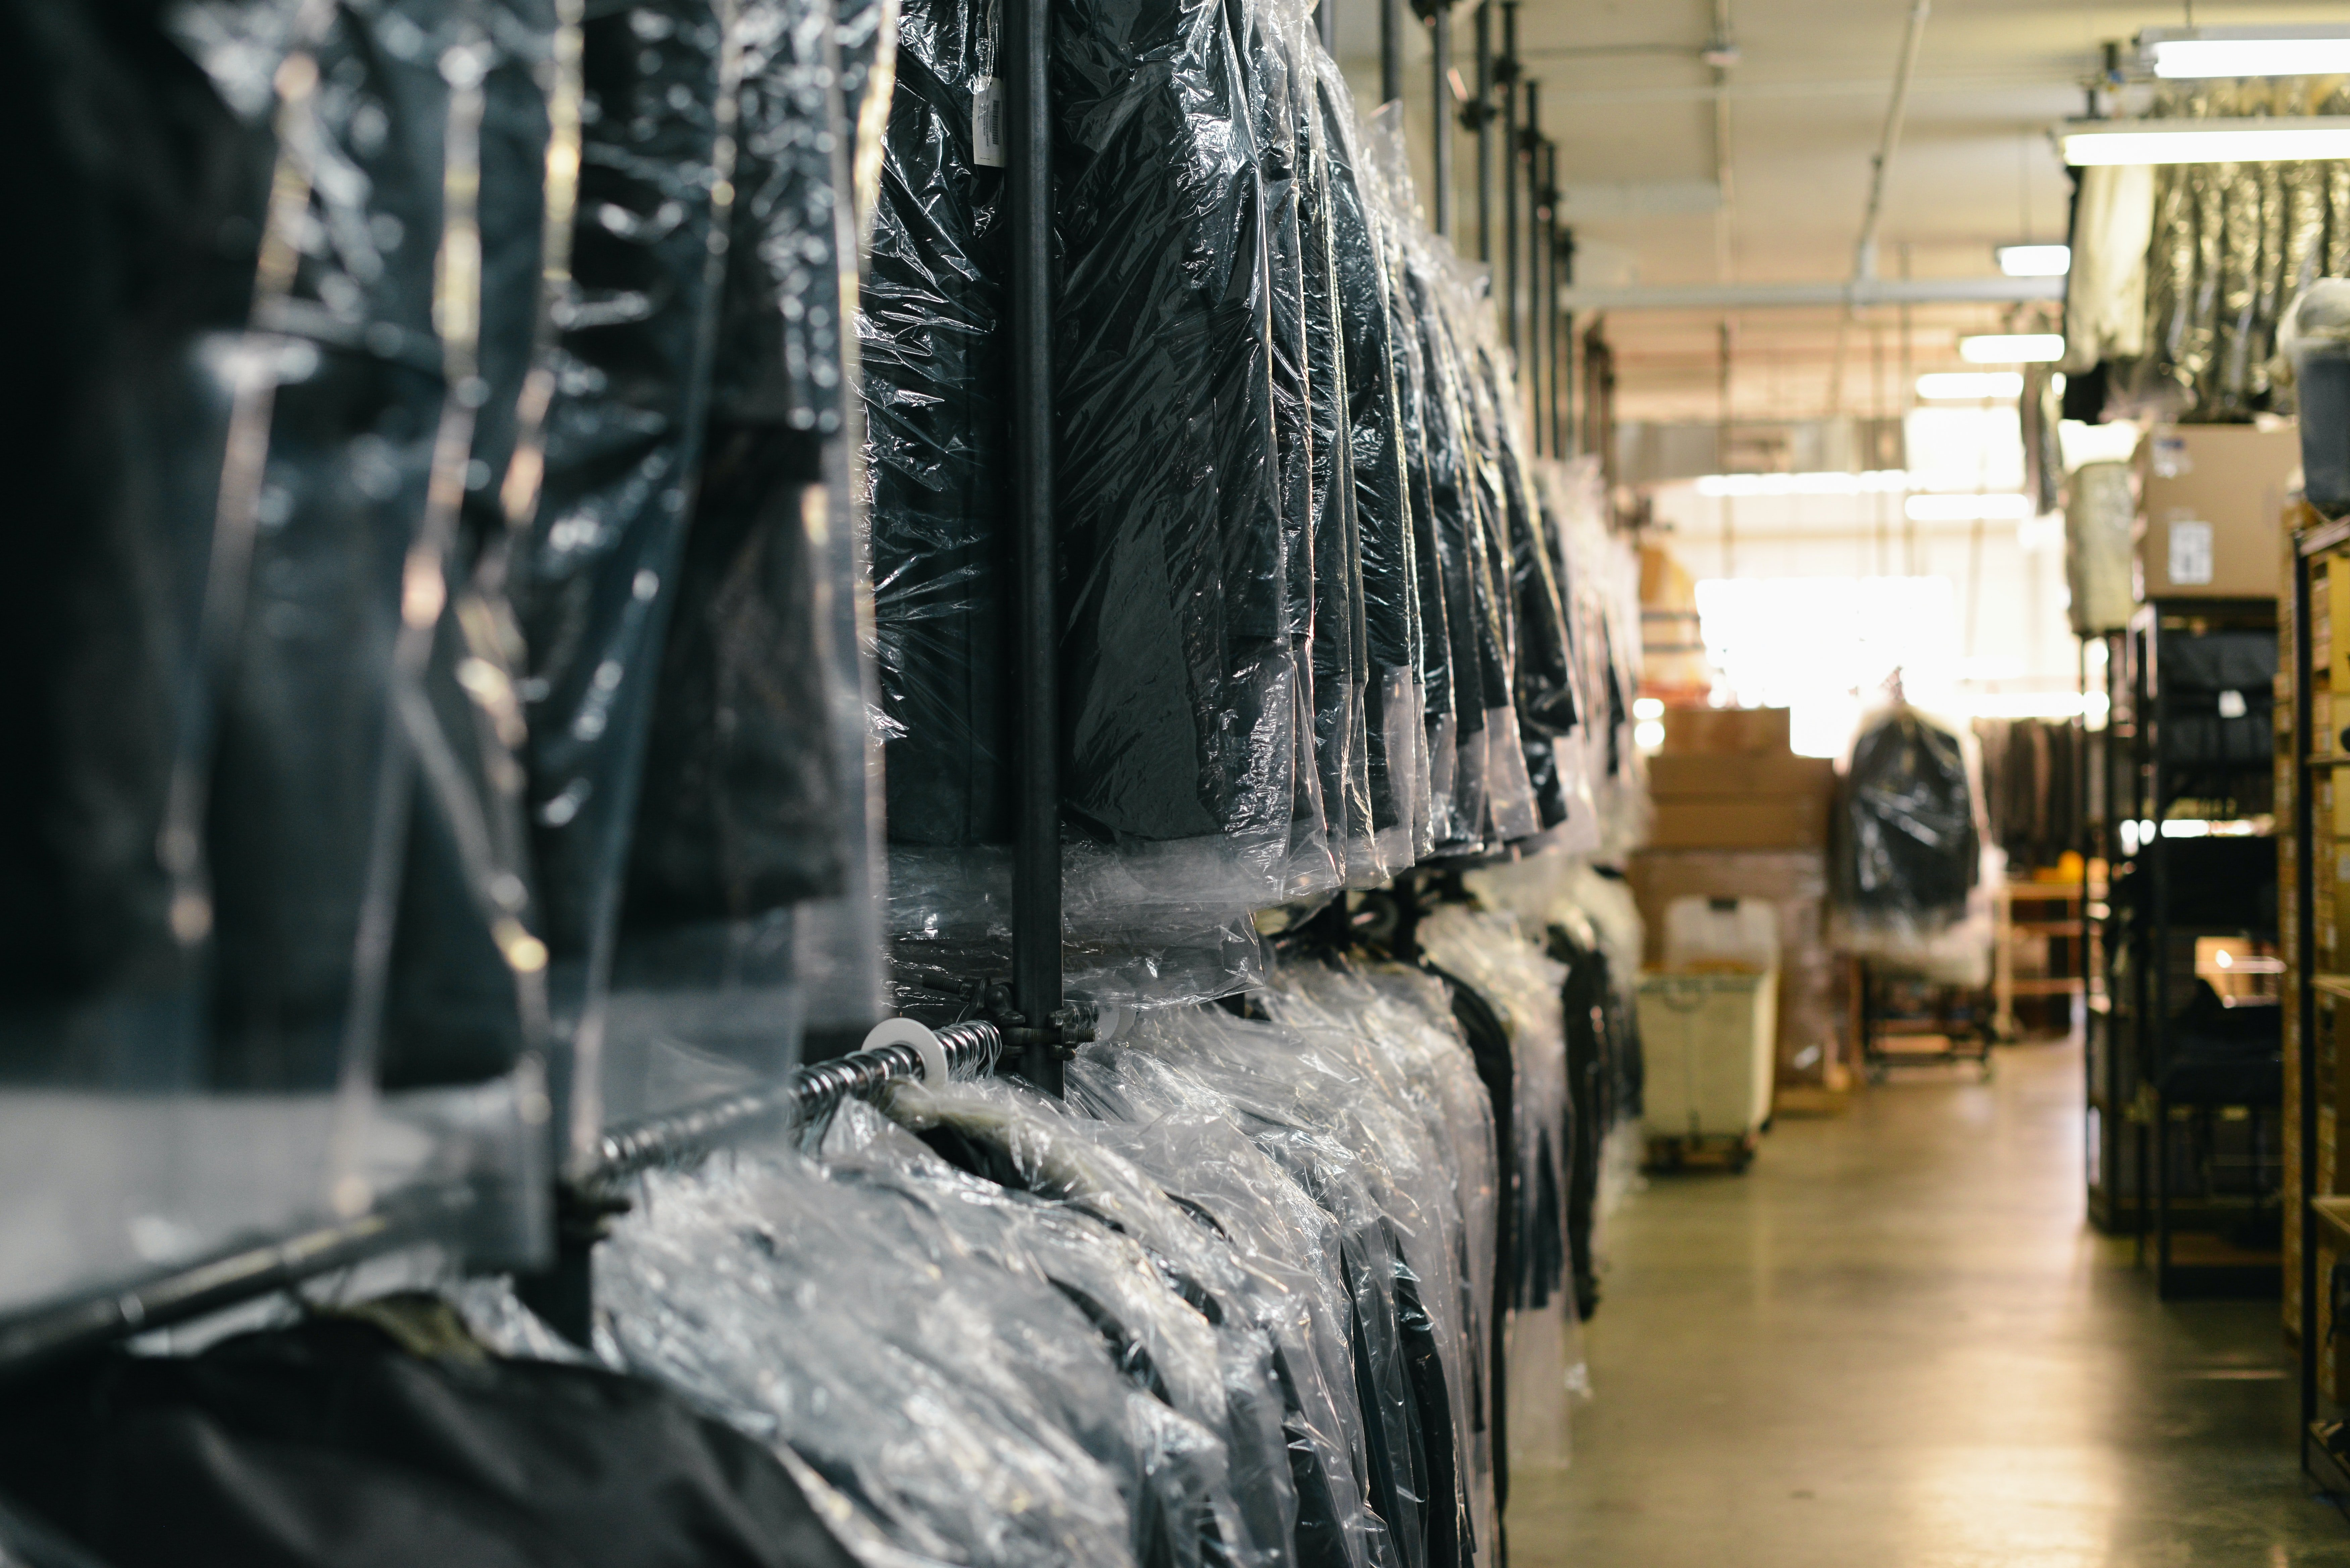 Matt and Josh accompanied Edward to the section where second-hand clothes were kept   Photo: Unsplash